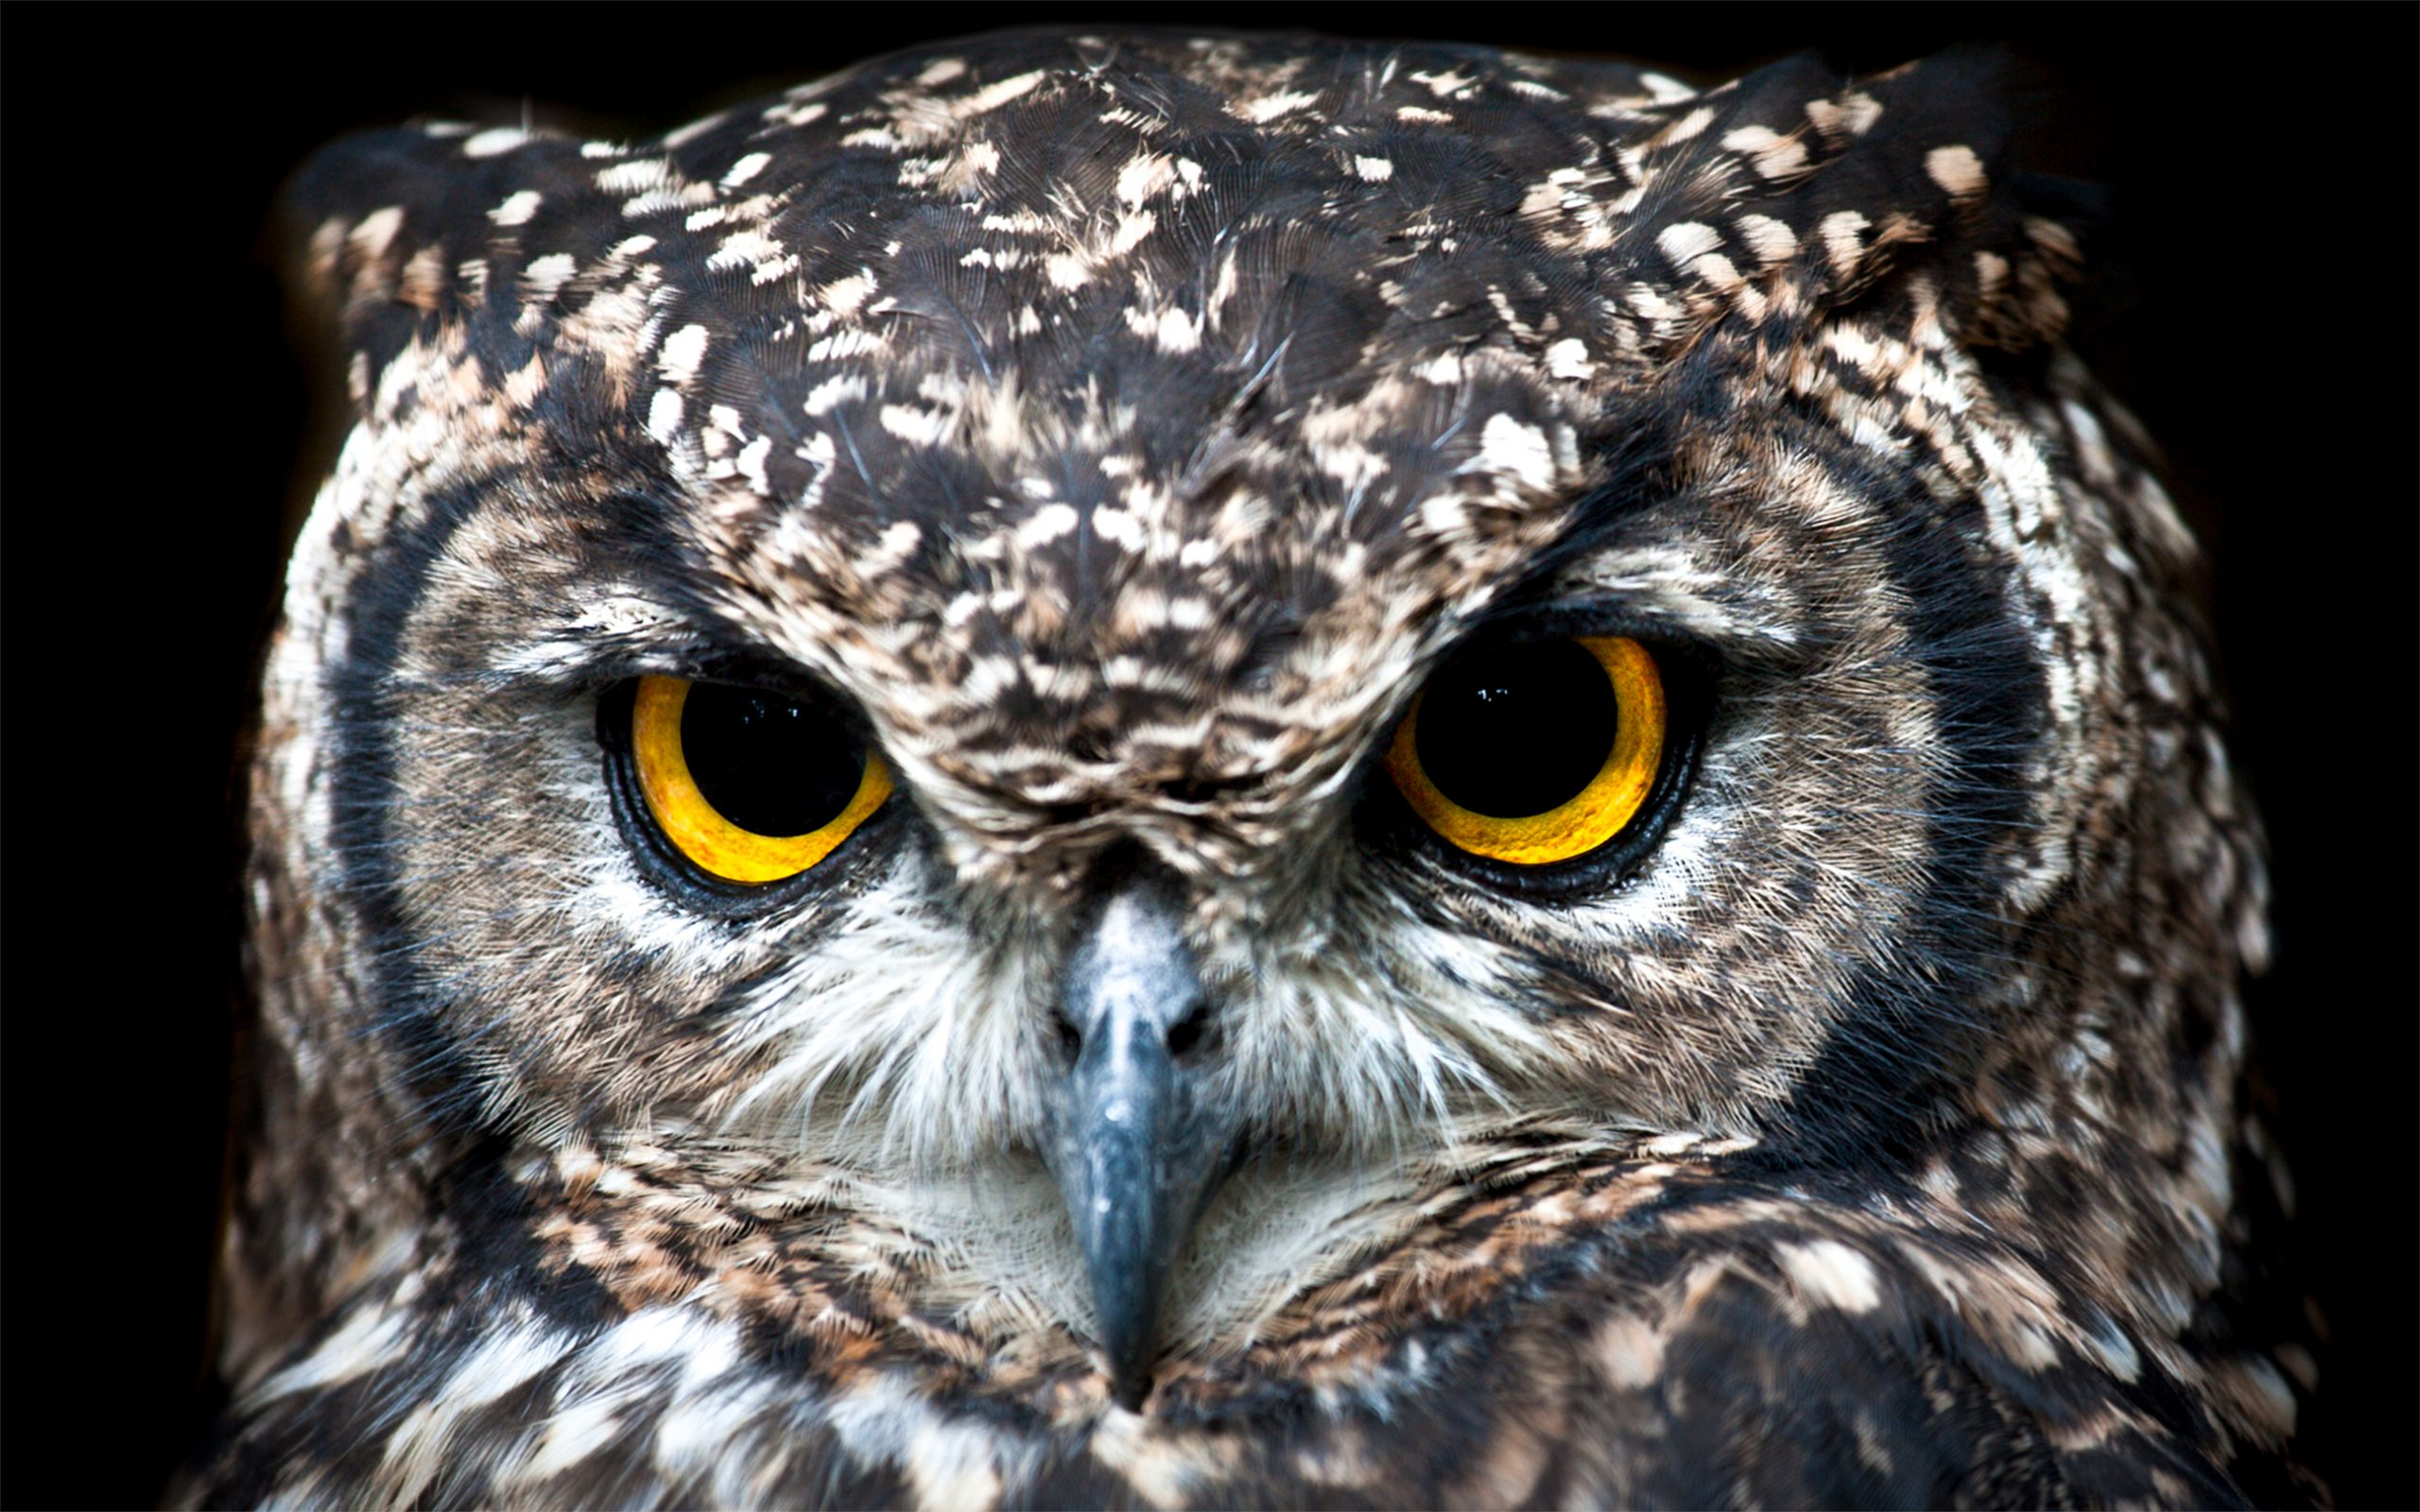 Portrait of a Spotted Eagle Owl symbolizing wisdom of the experts